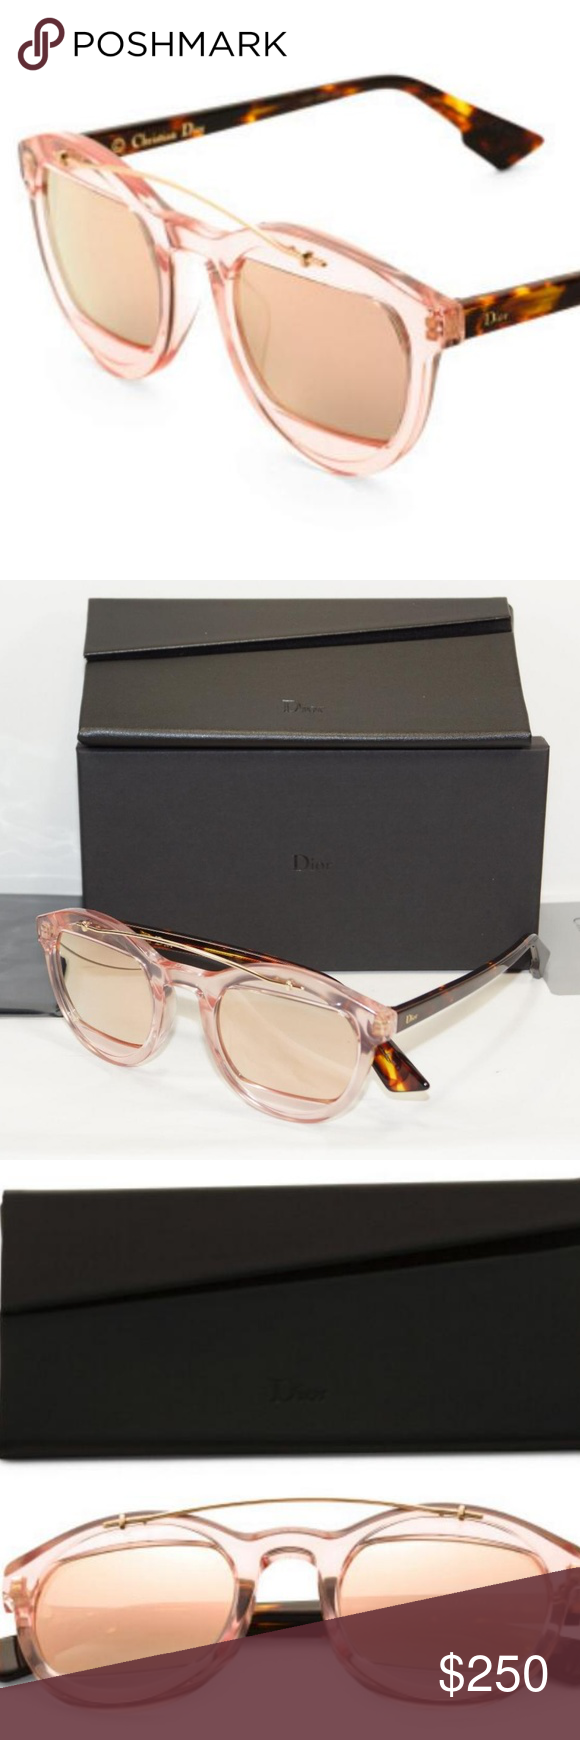 78b9098d0087 I just added this listing on Poshmark  CHRISTIAN DIOR PINK HAVANA SUNGLASSES  DIOR MANIA1.